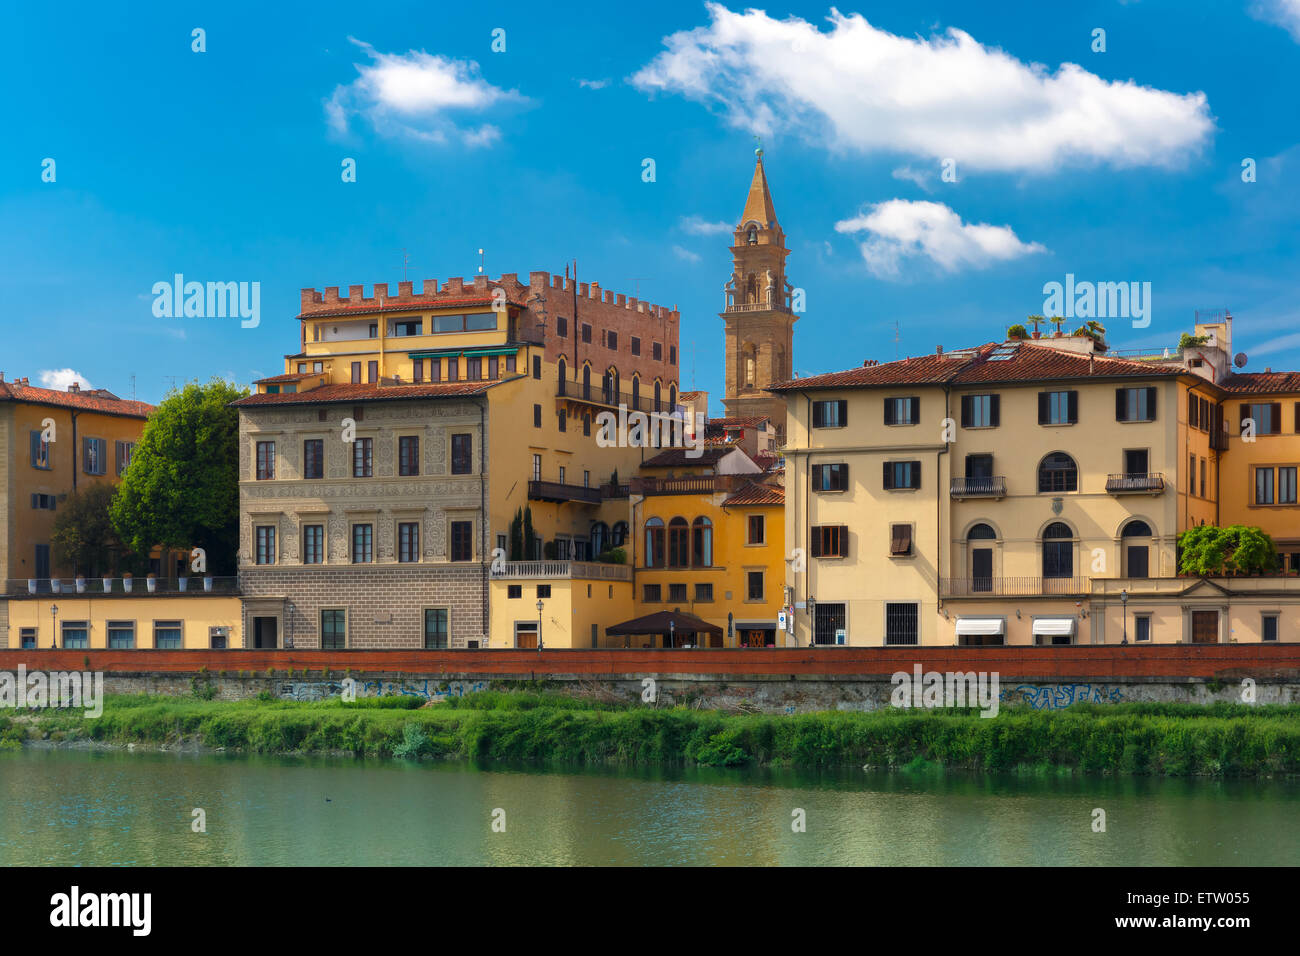 Quay of the river Arno in Florence, Italy - Stock Image